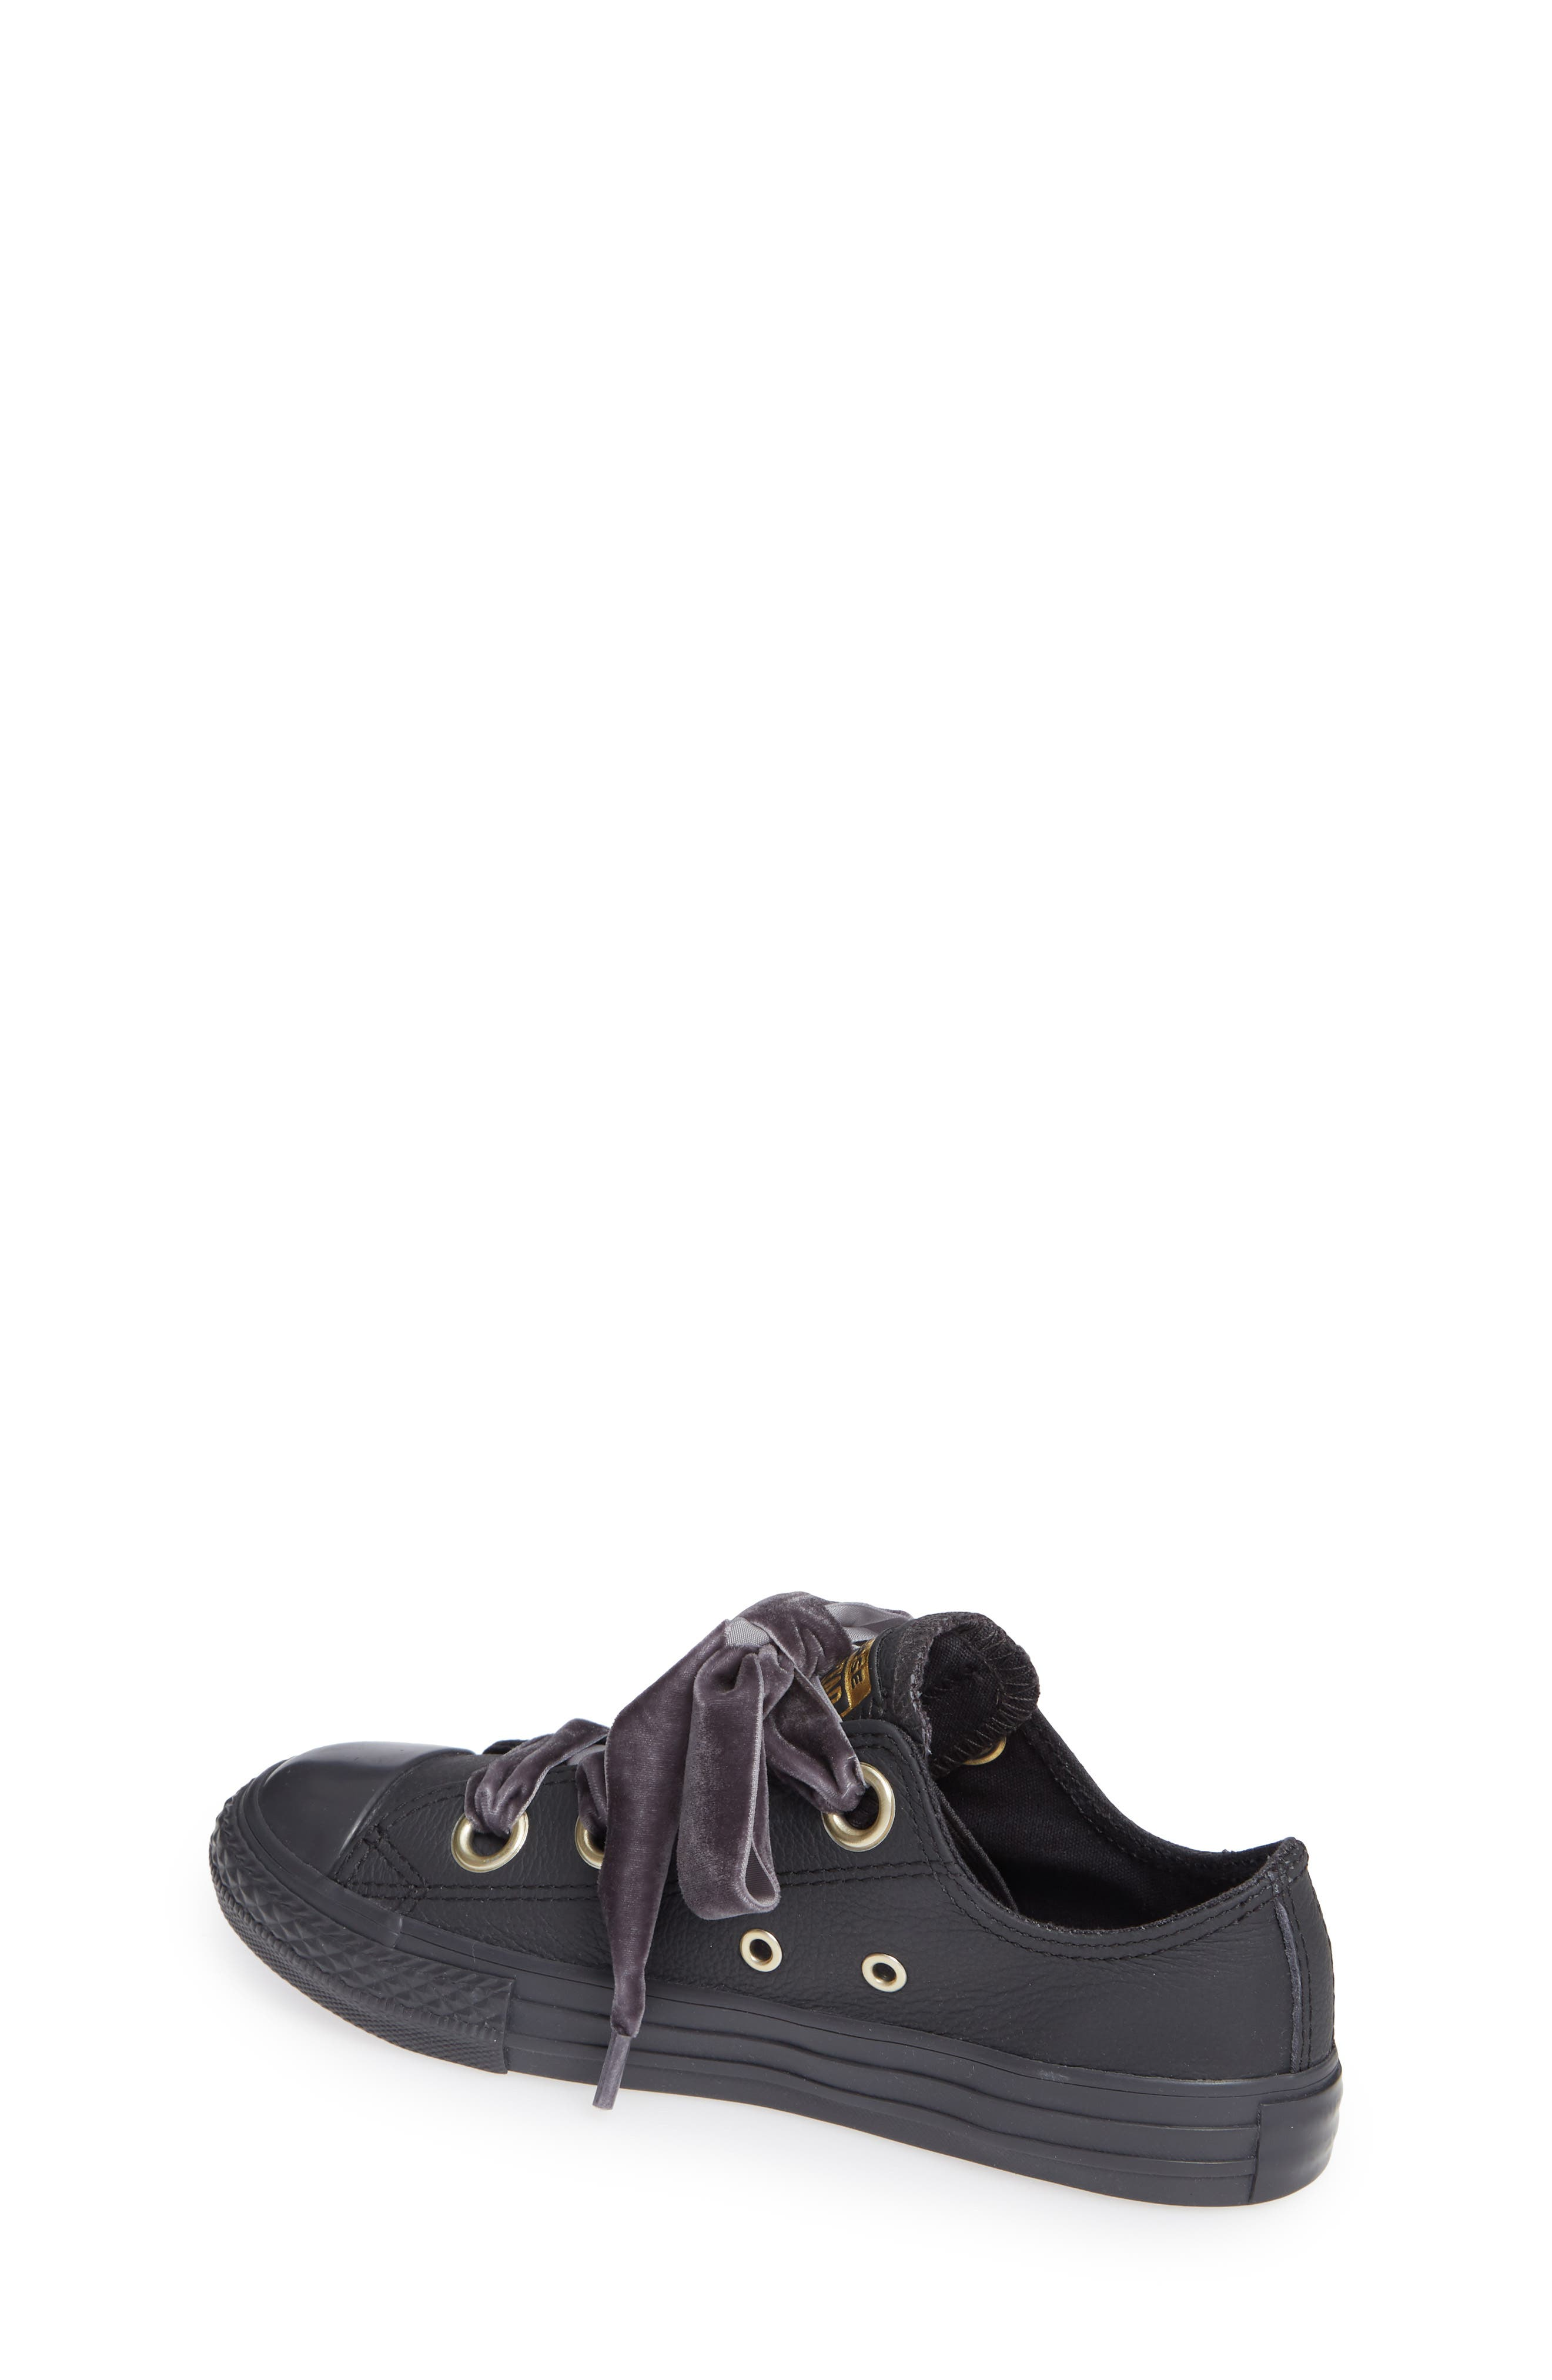 Chuck Taylor<sup>®</sup> All Star<sup>®</sup> Big Eyelet Leather Sneaker,                             Alternate thumbnail 2, color,                             BLACK